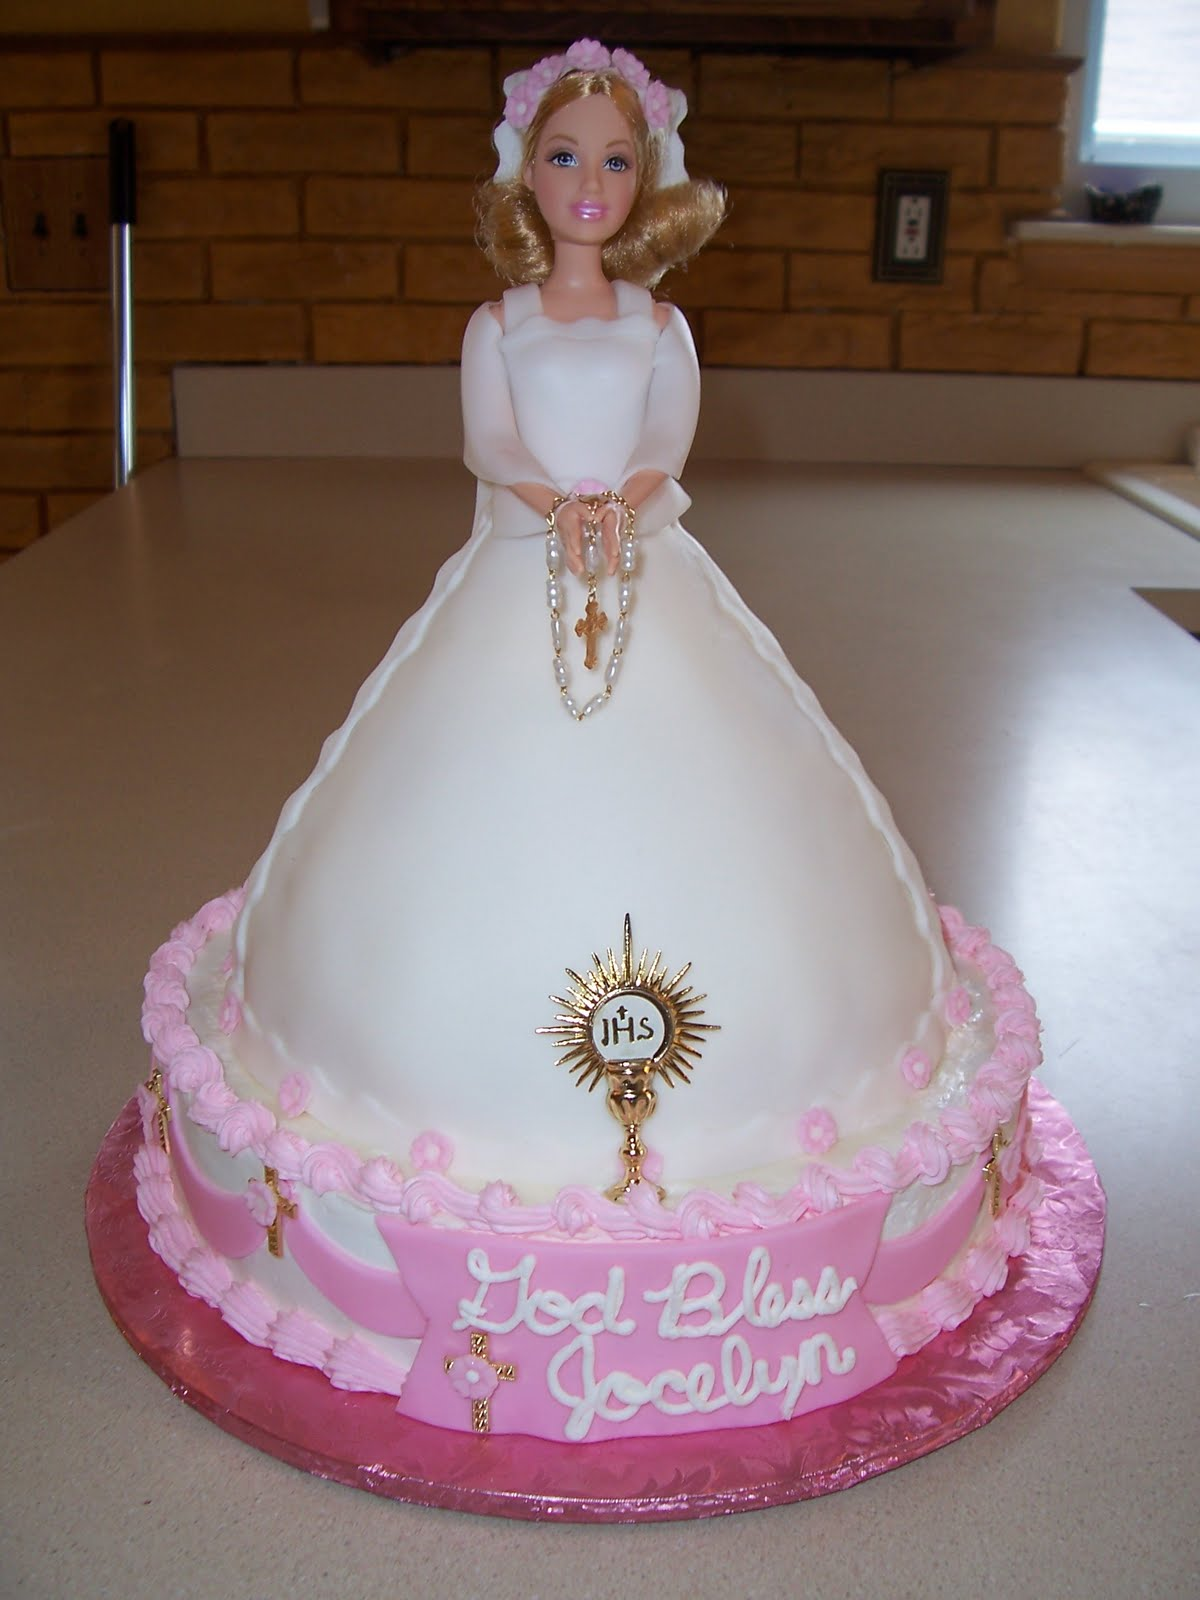 Favorito torte-prima-comunione-barbie - Blogmamma.it : Blogmamma.it JZ08